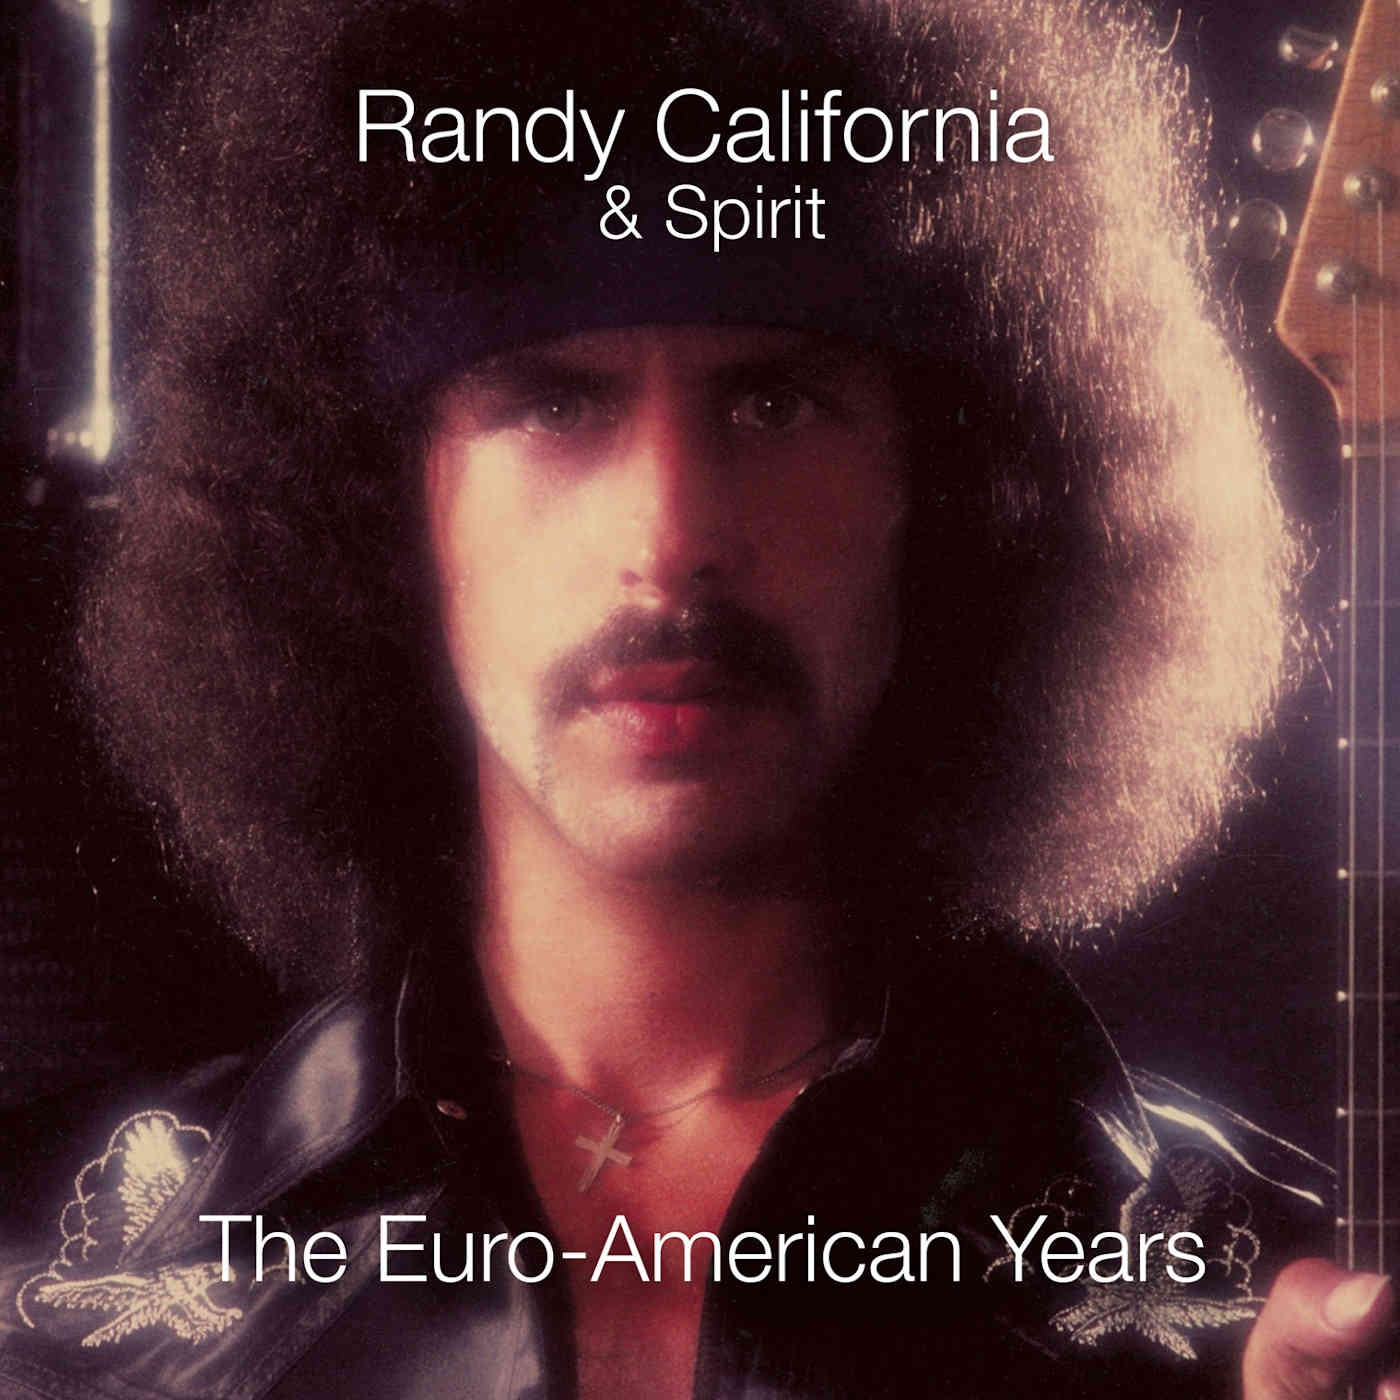 The Euro-American Years, 6CD Remastered Boxset